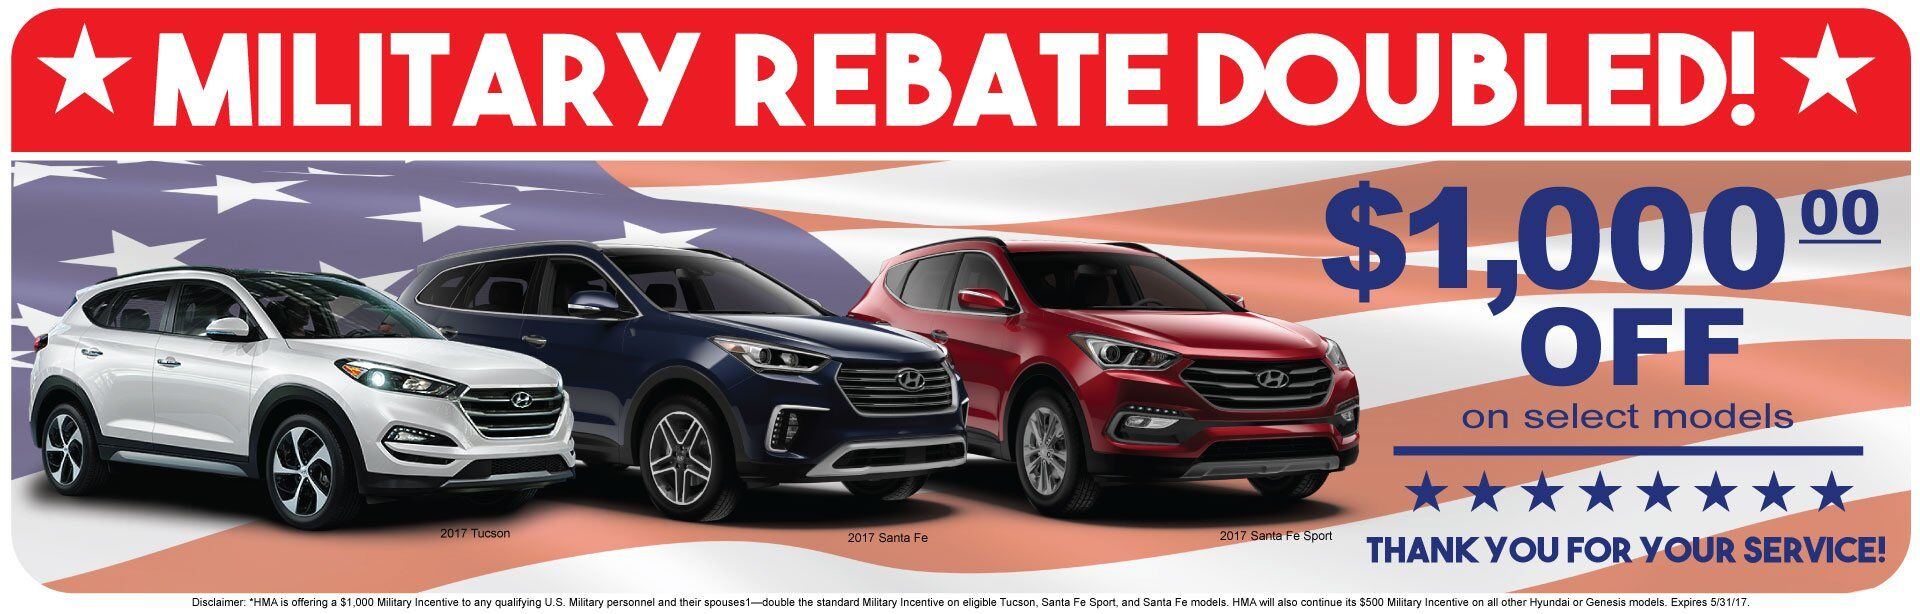 Double Military Rebate